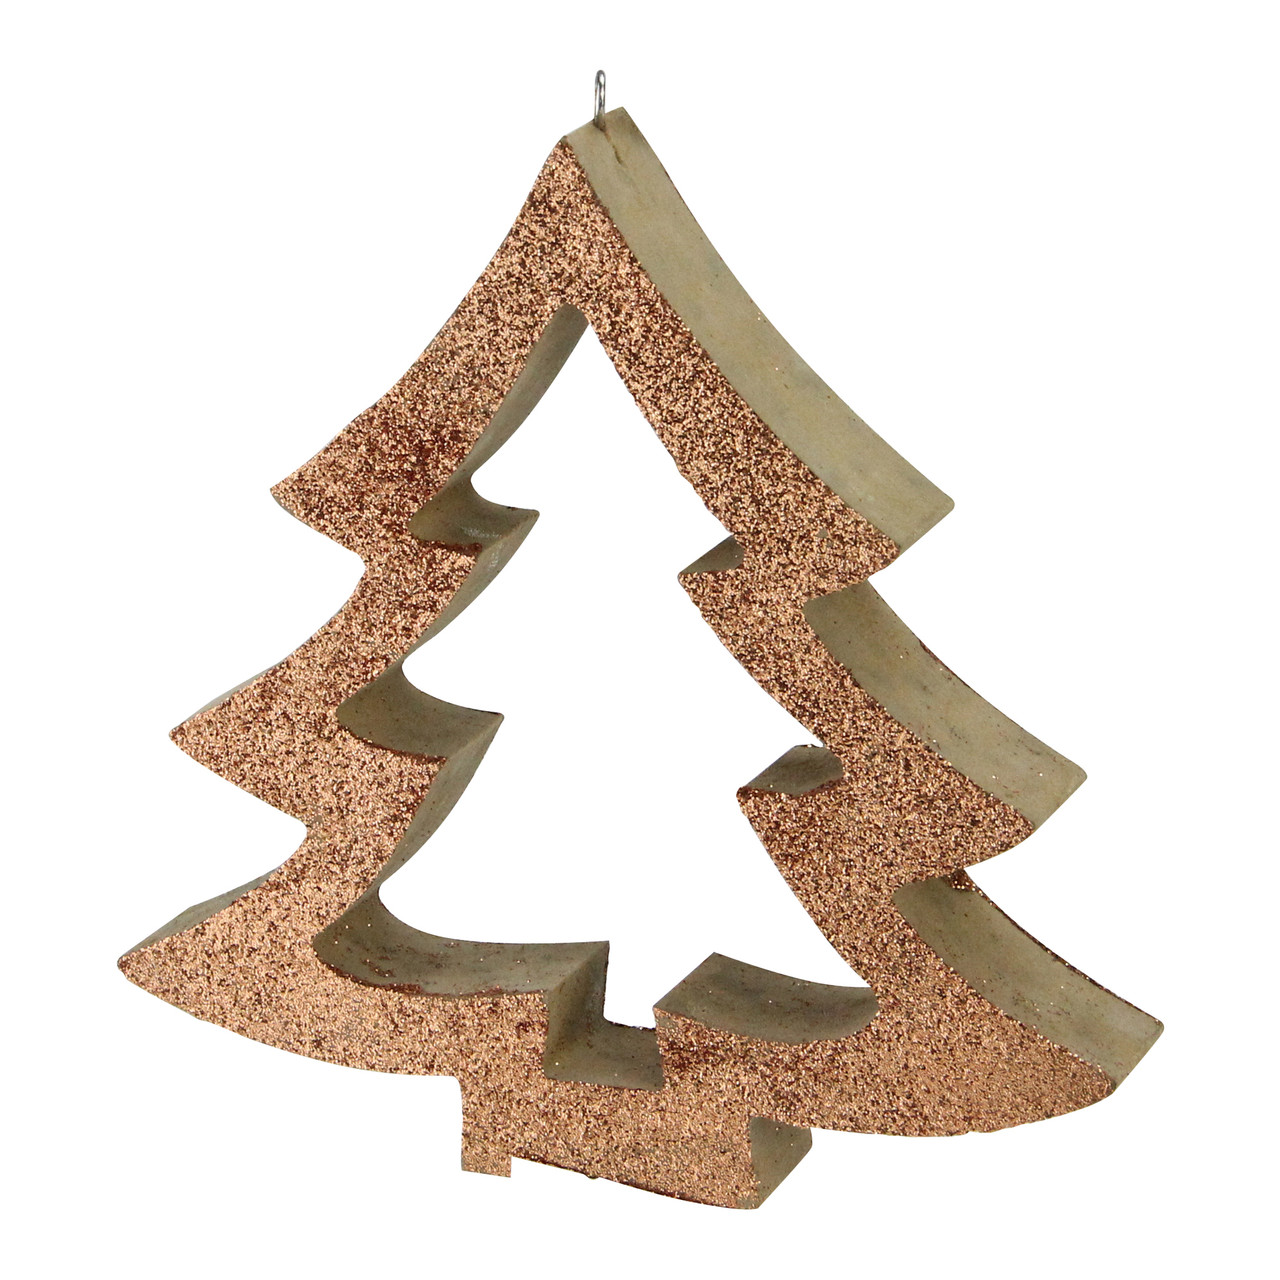 7 Copper Glittered Cutout Tree Christmas Ornament 32621876